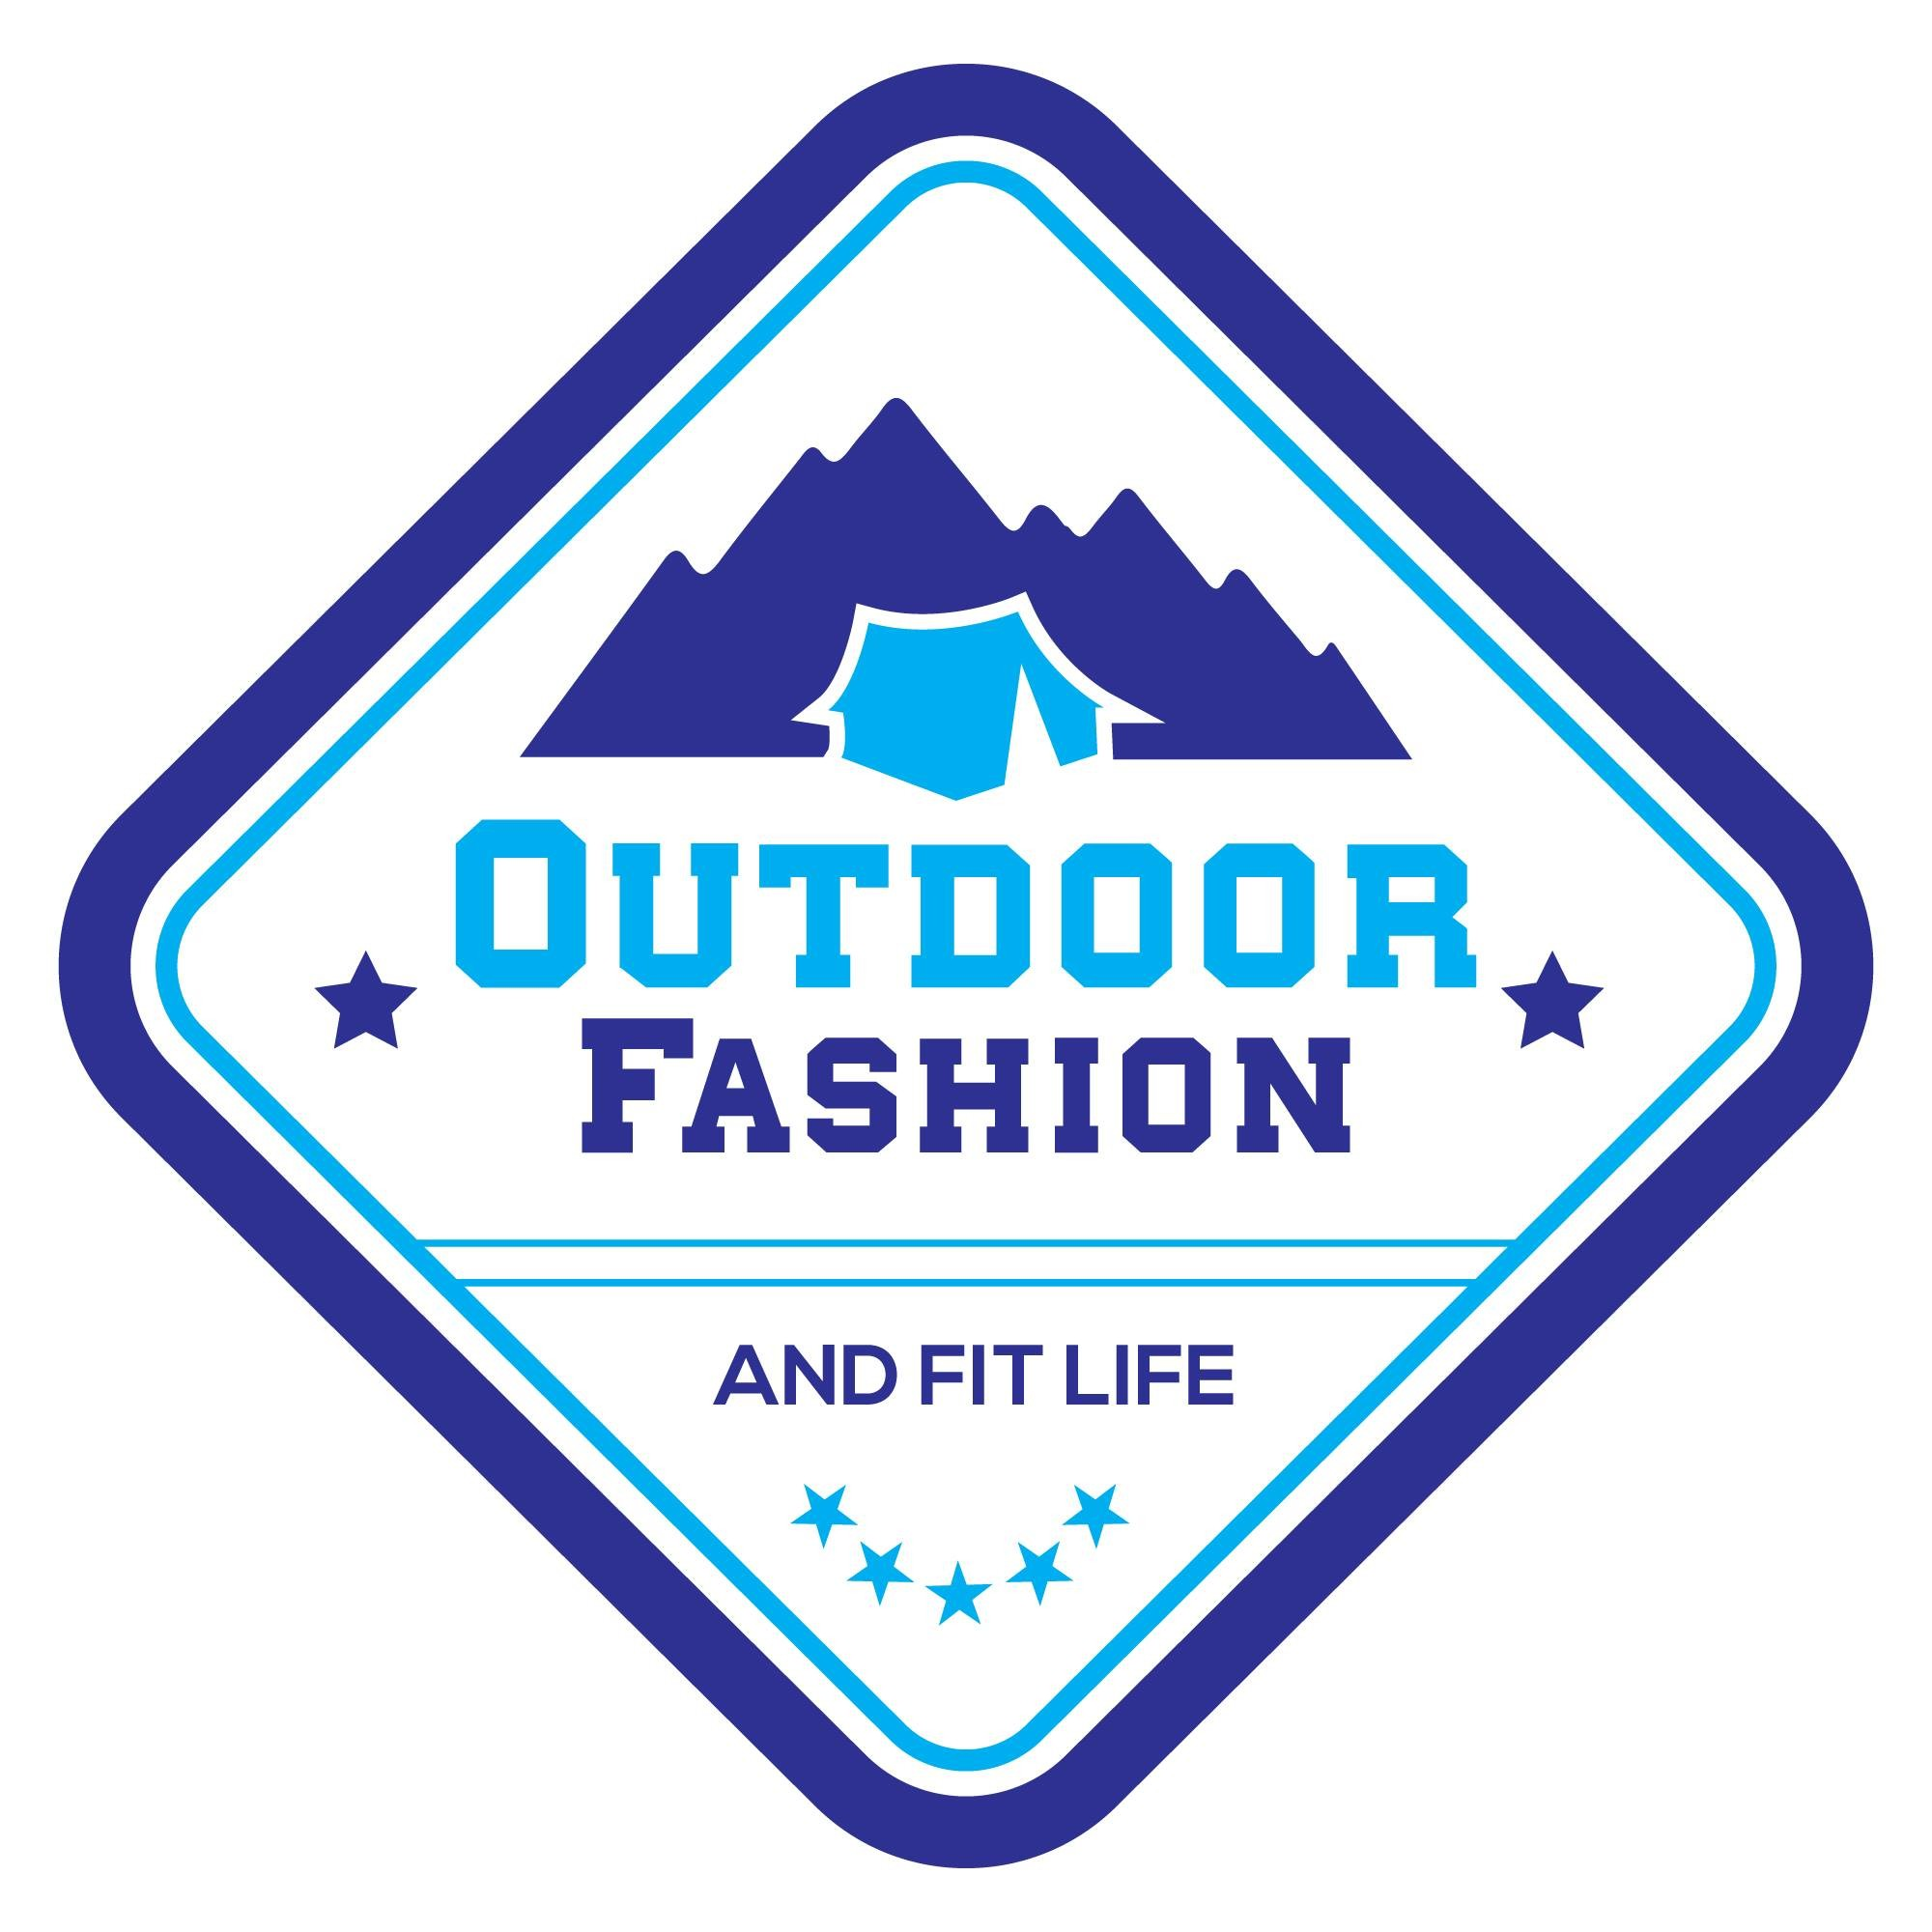 Outdoor Fashion and Fit Life